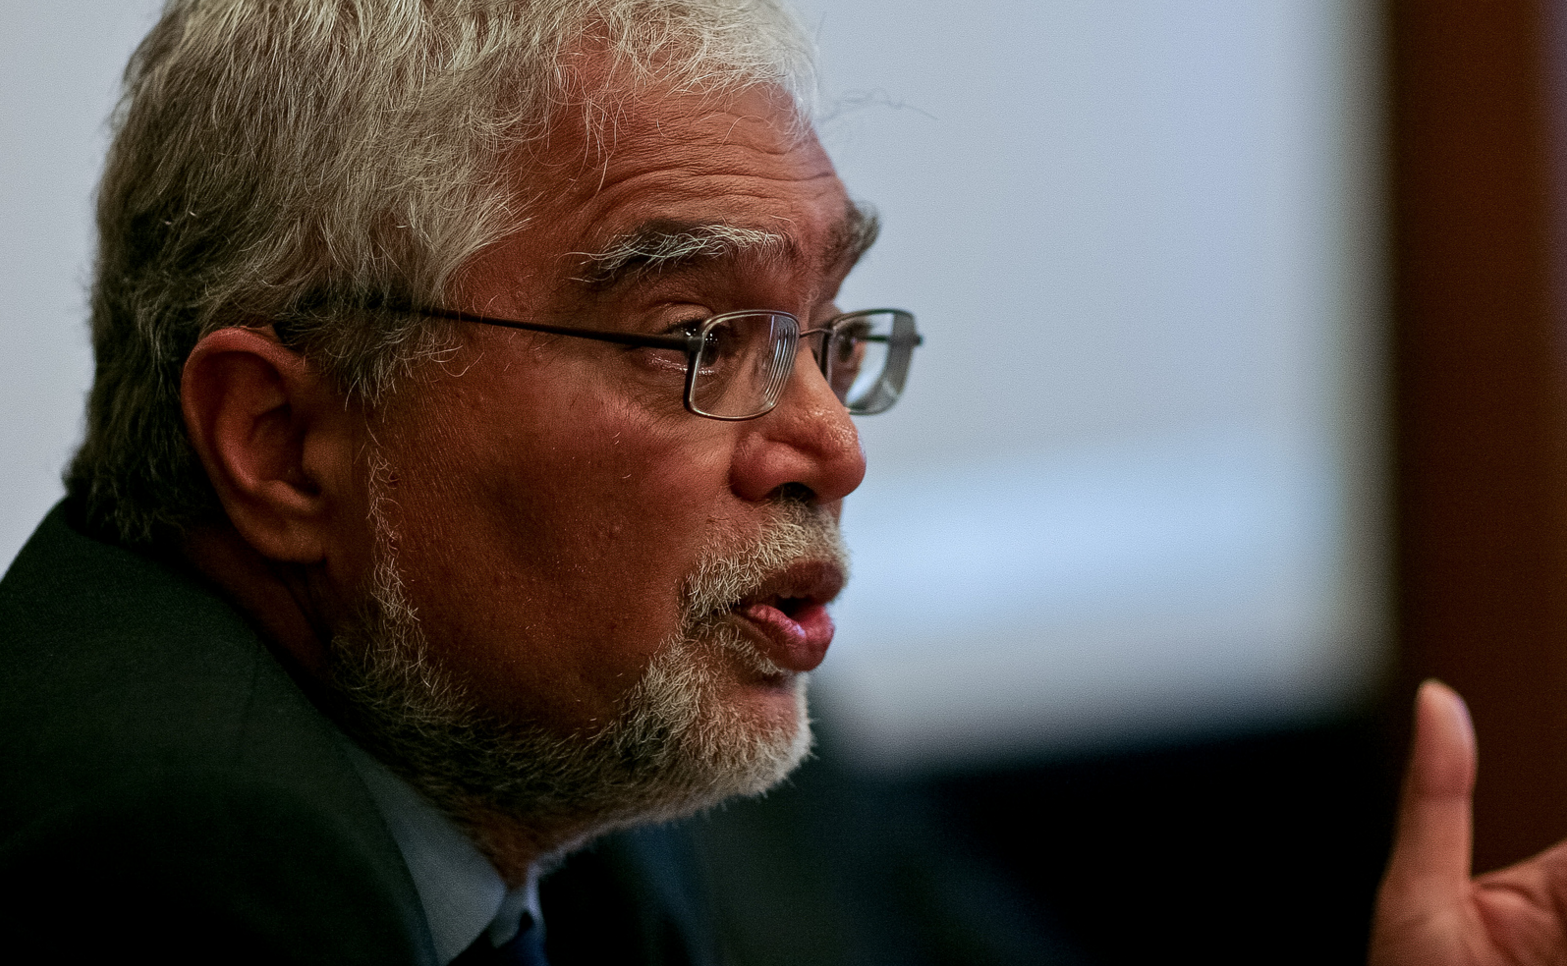 As head of the UN in Sudan, Dr Mukesh Kapila blew the whistle on the Darfur crisis in 2004